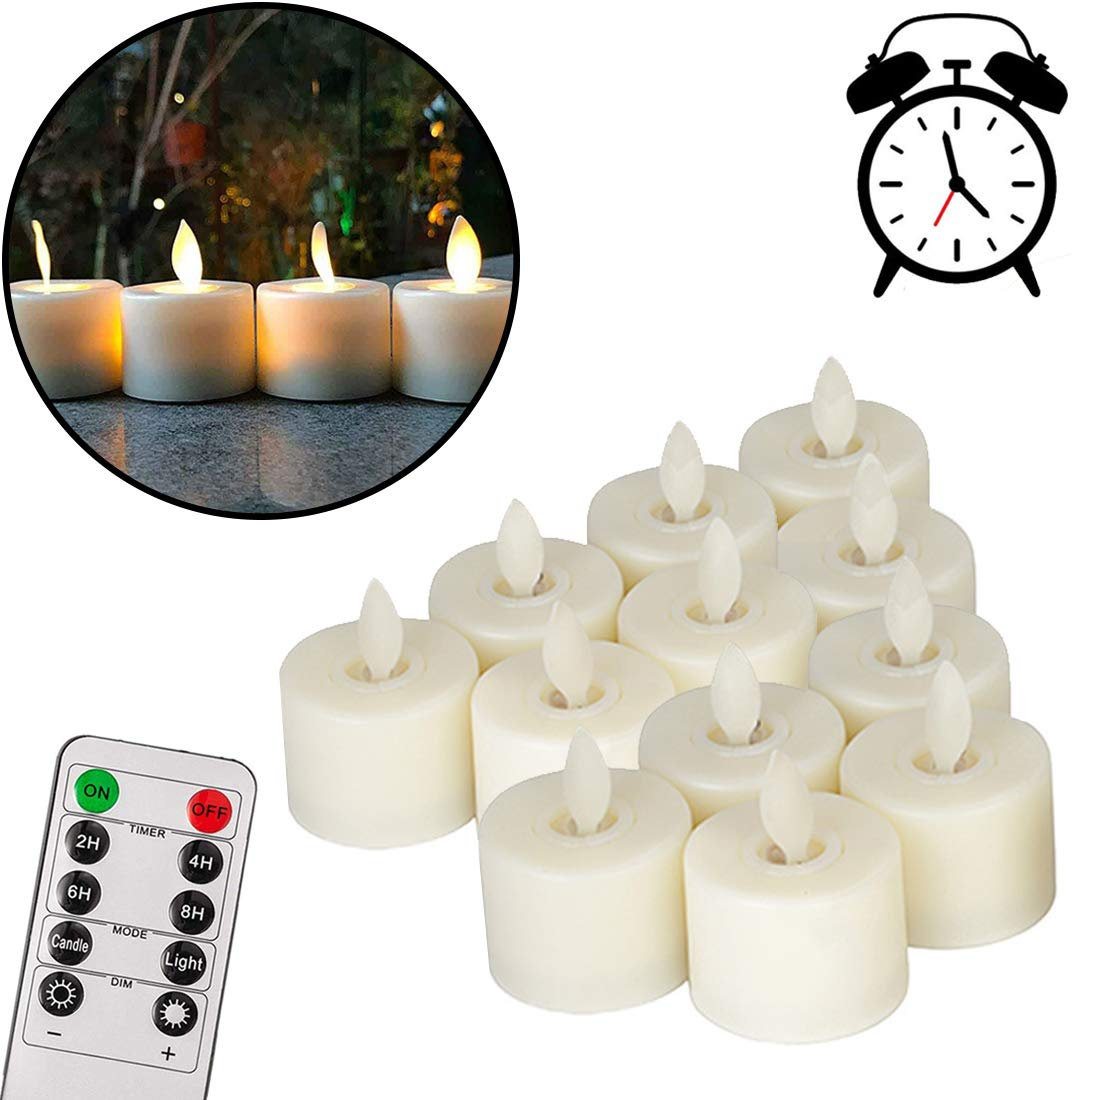 Pack of 12 Realistic and Bright Flickering Bulb Flameless LED Tea Light Fake Flameless Candles with Timer,Battery Operated Warm White with Dancing Flickering Bulb for Christmas/Wedding/Birthday Party by VVMOM